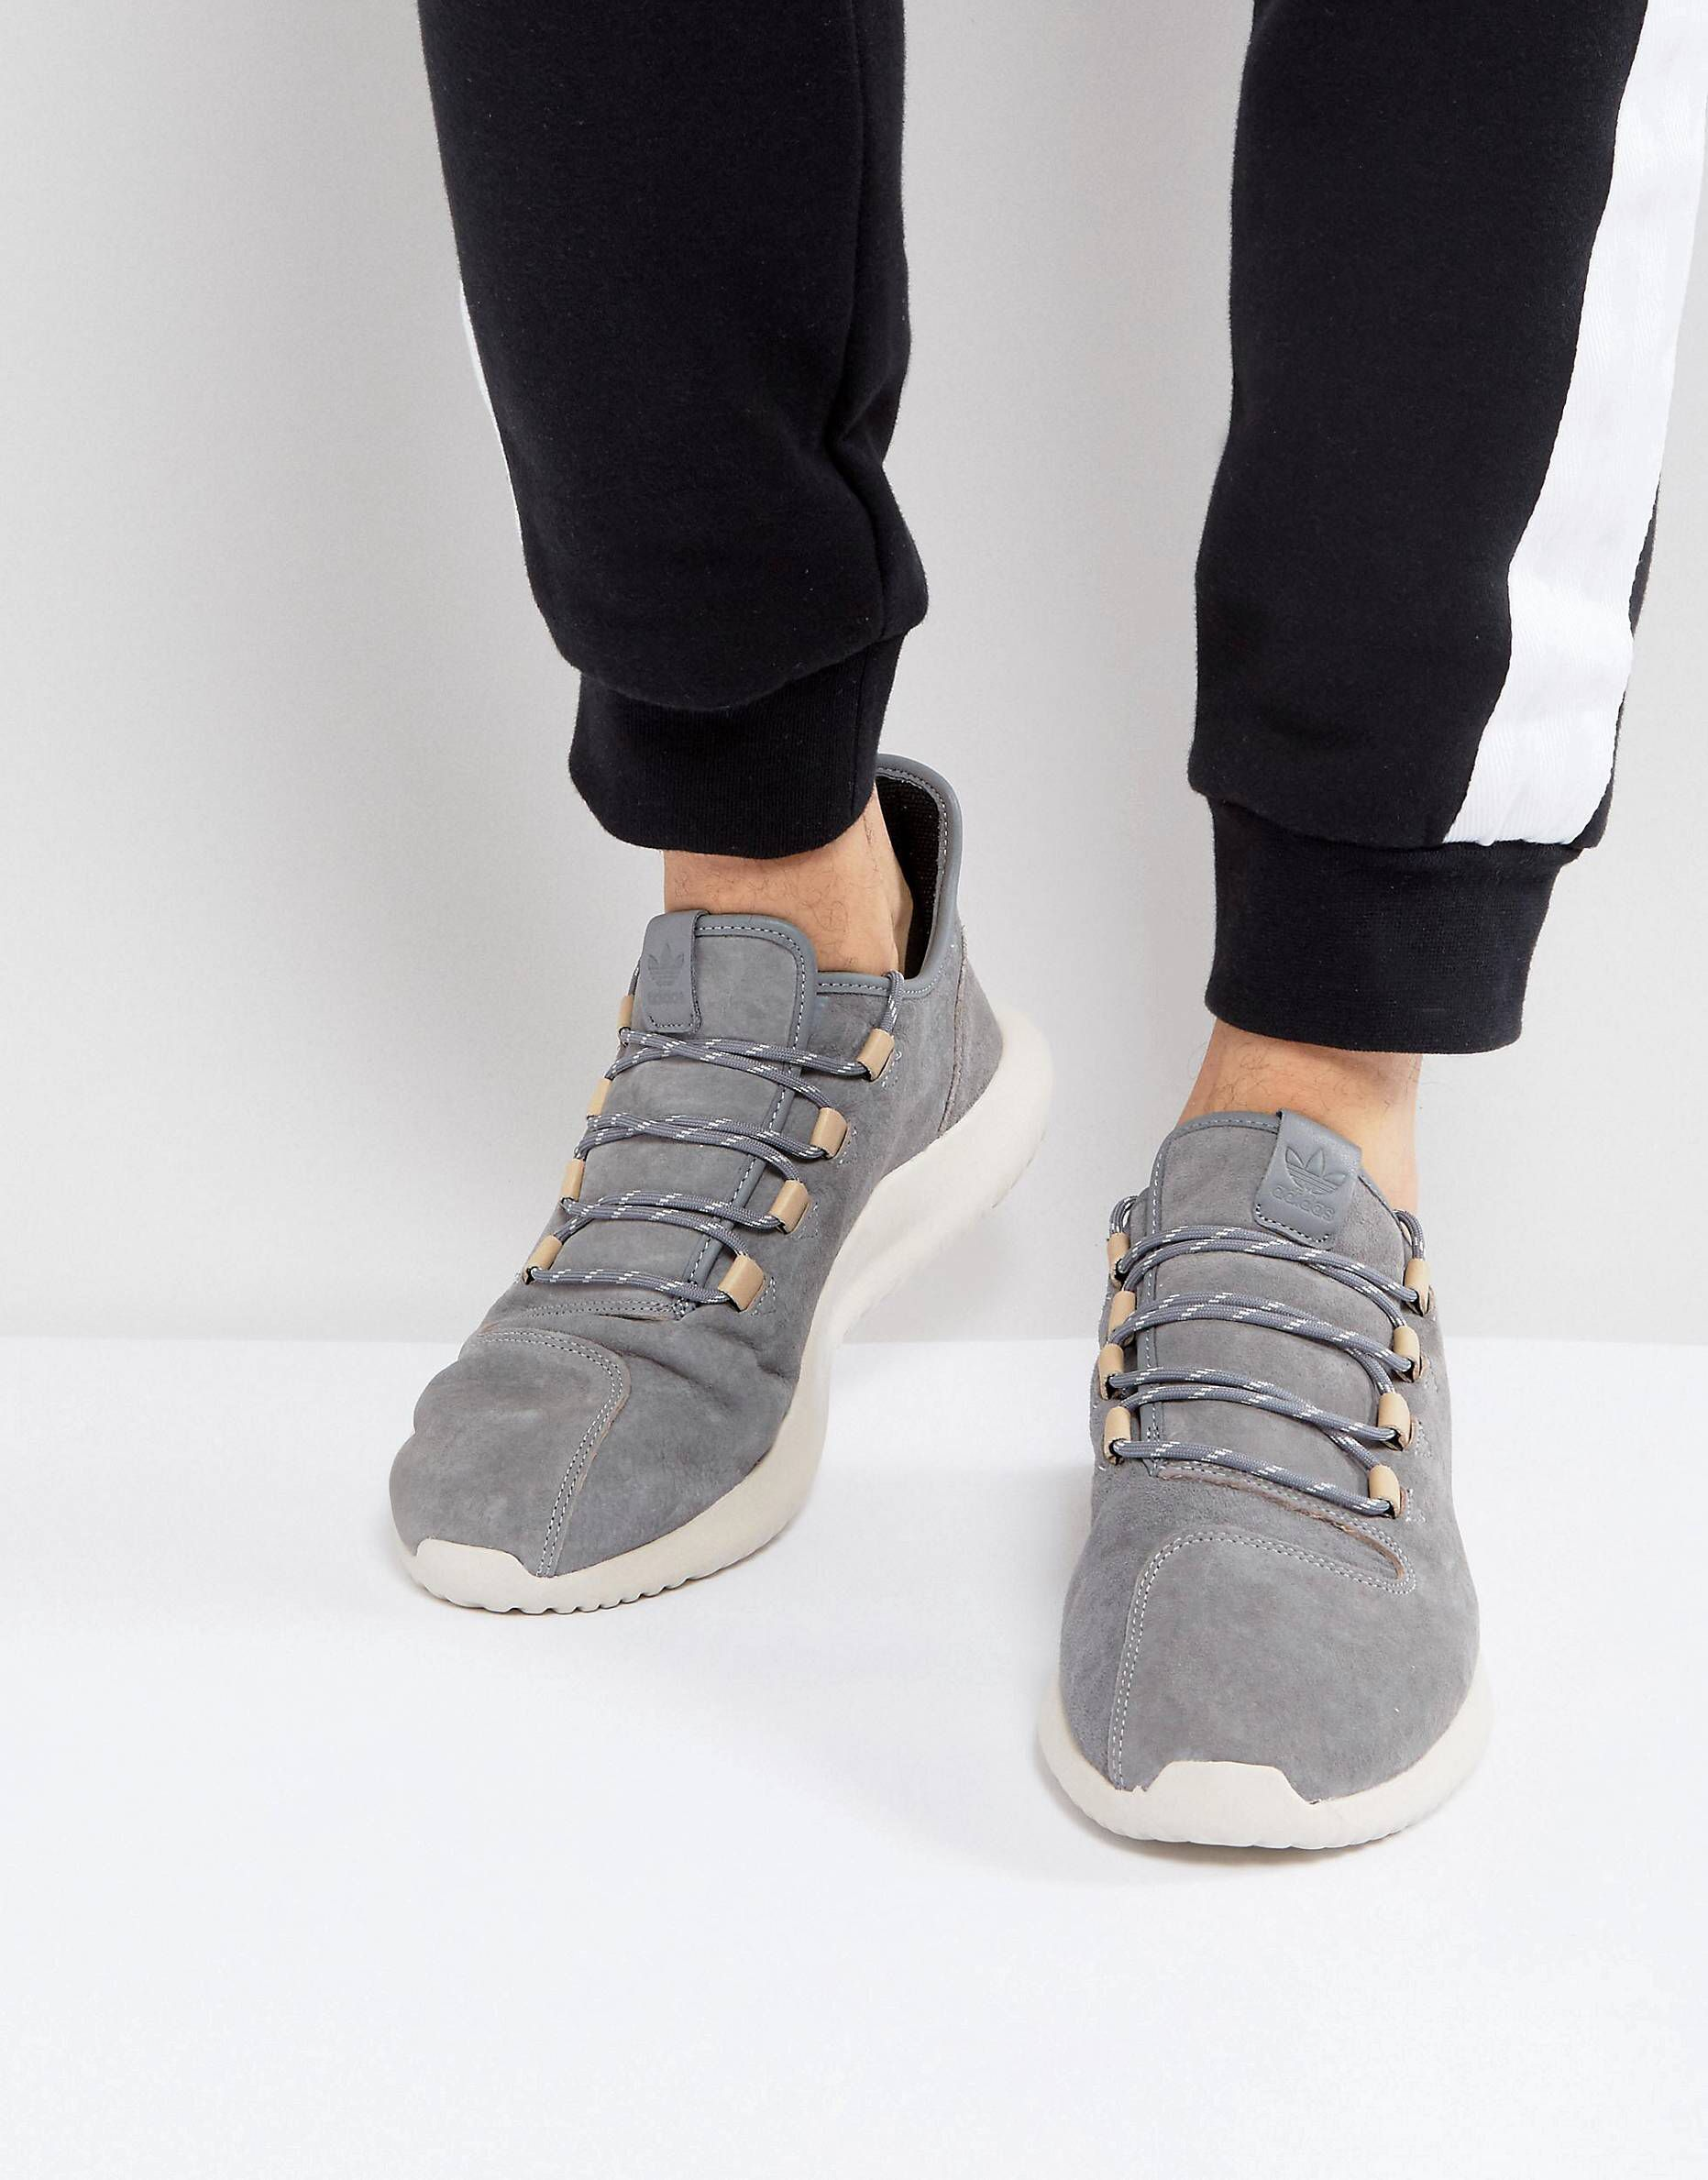 new arrival 1acd9 22276 LOVE this from ASOS! | Clothing | Adidas tubular shadow ...